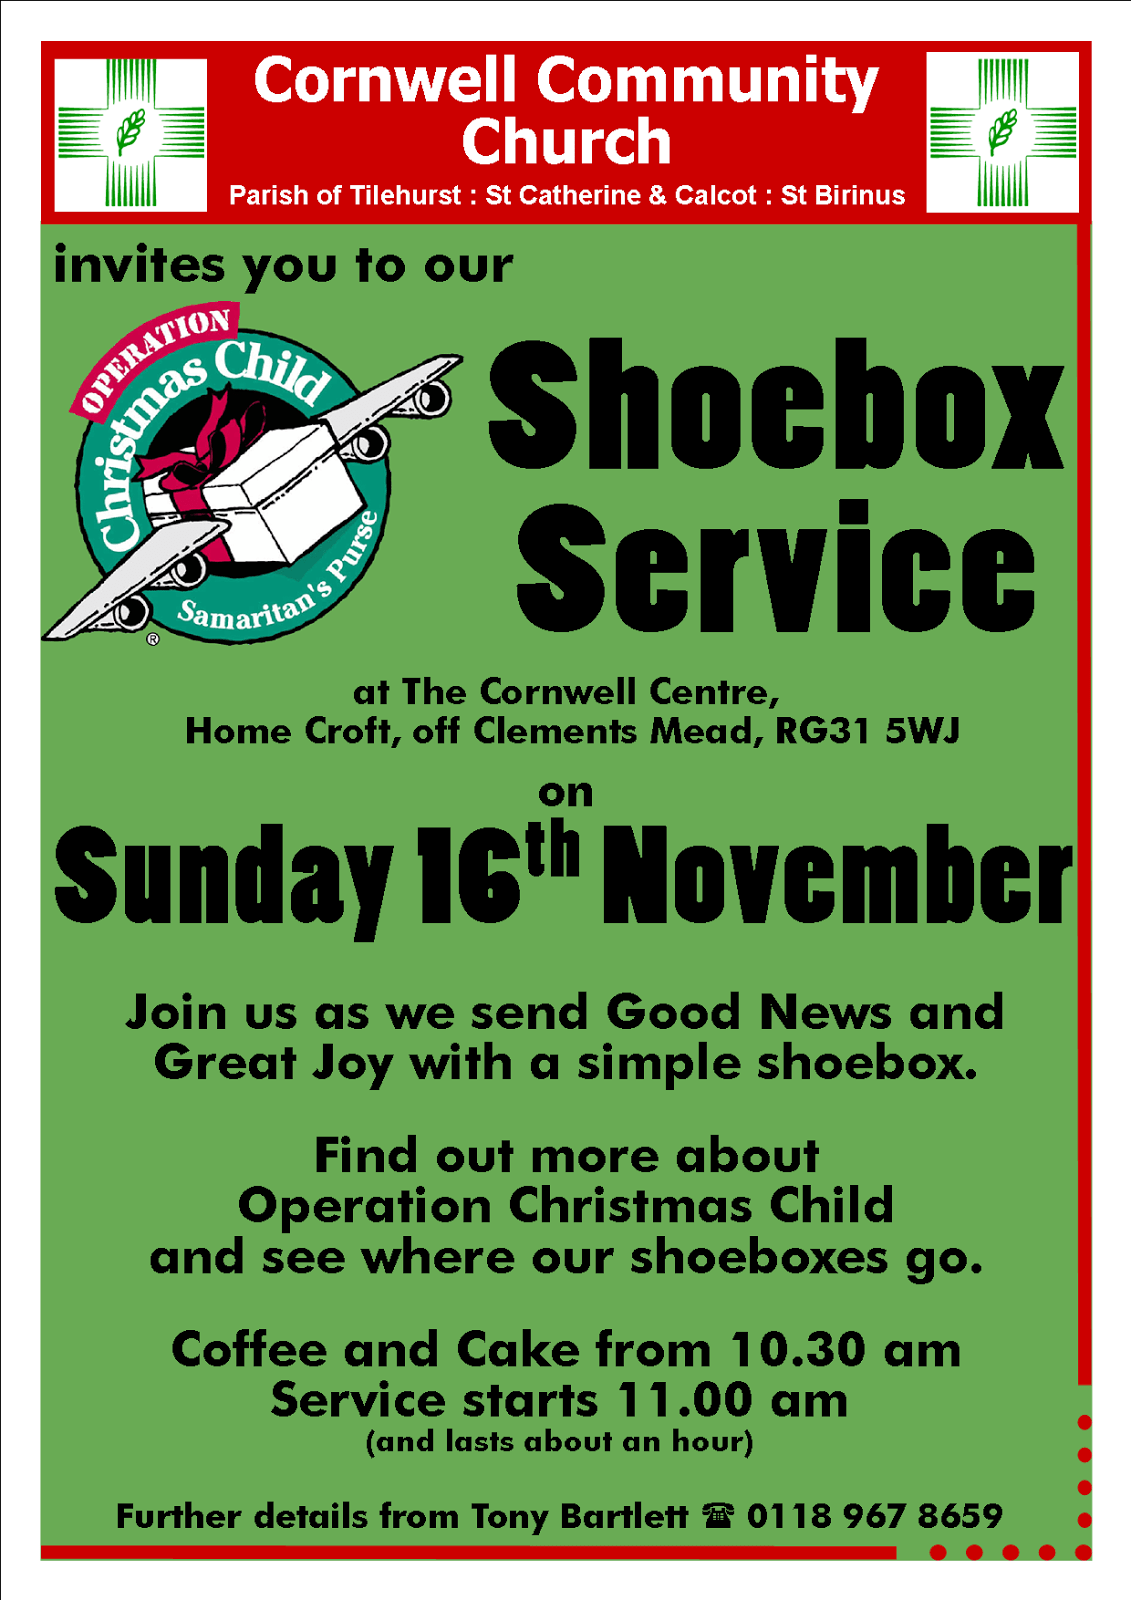 Shoebox Service – Sunday 16th November